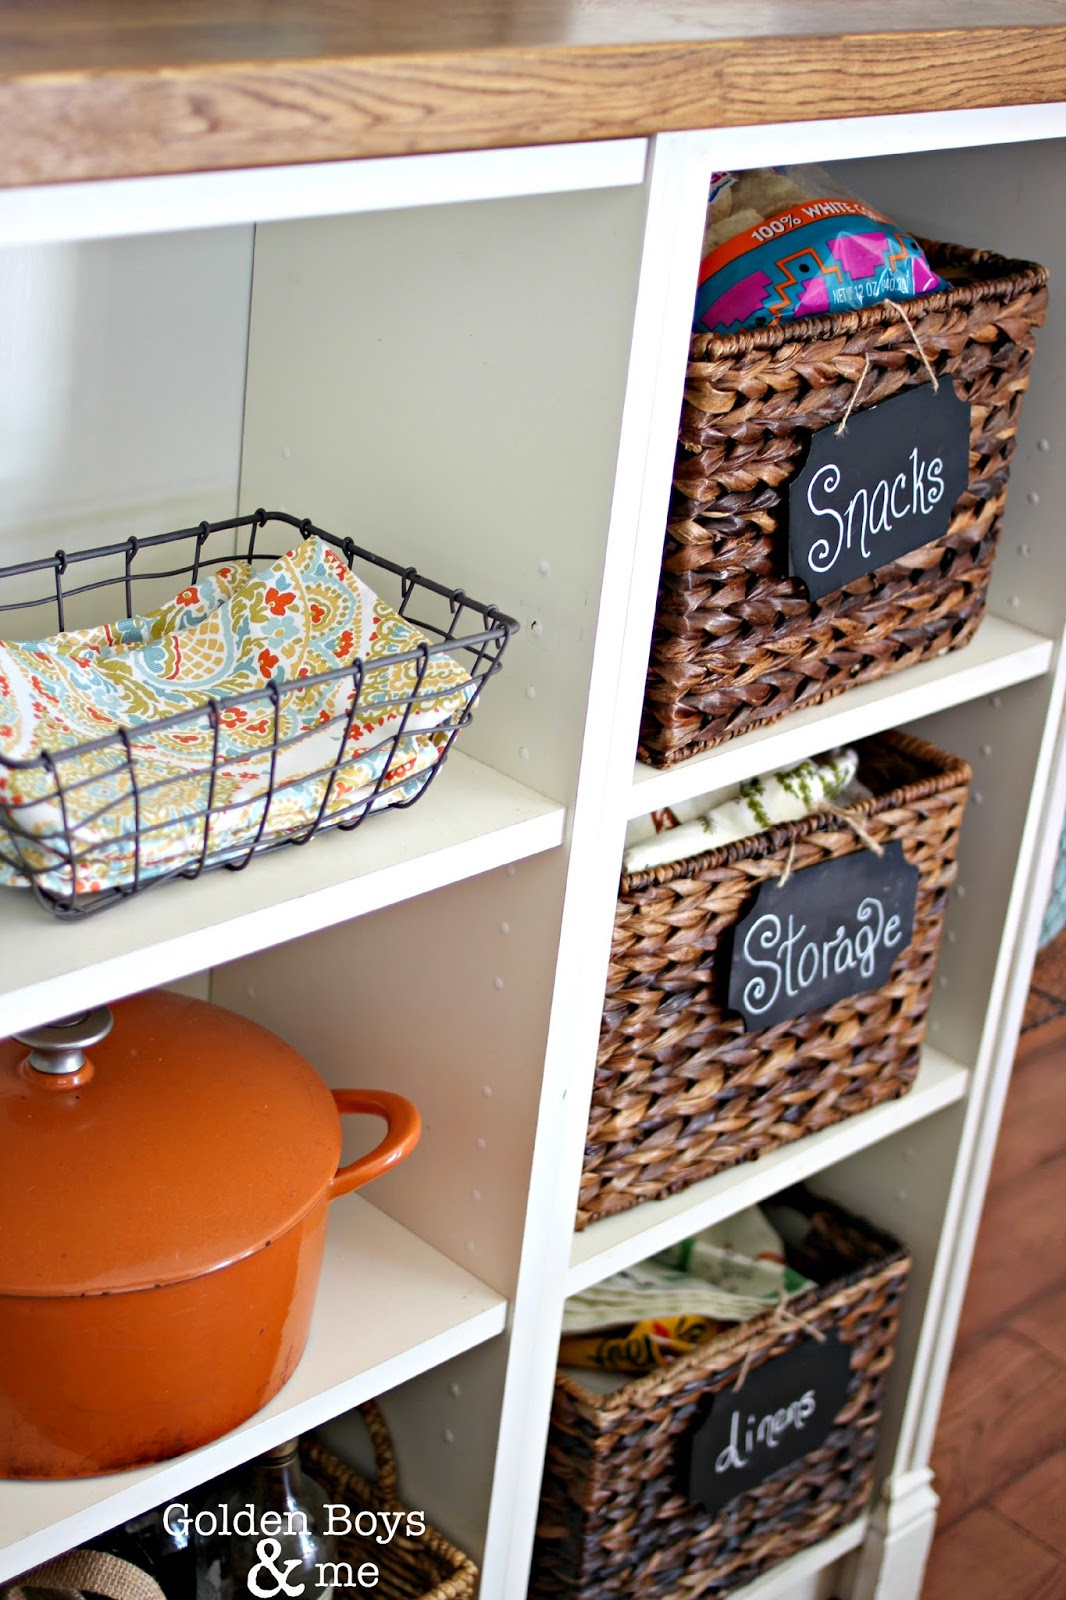 Baskets for kitchen storage on open shelves-www.goldenboysandme.com